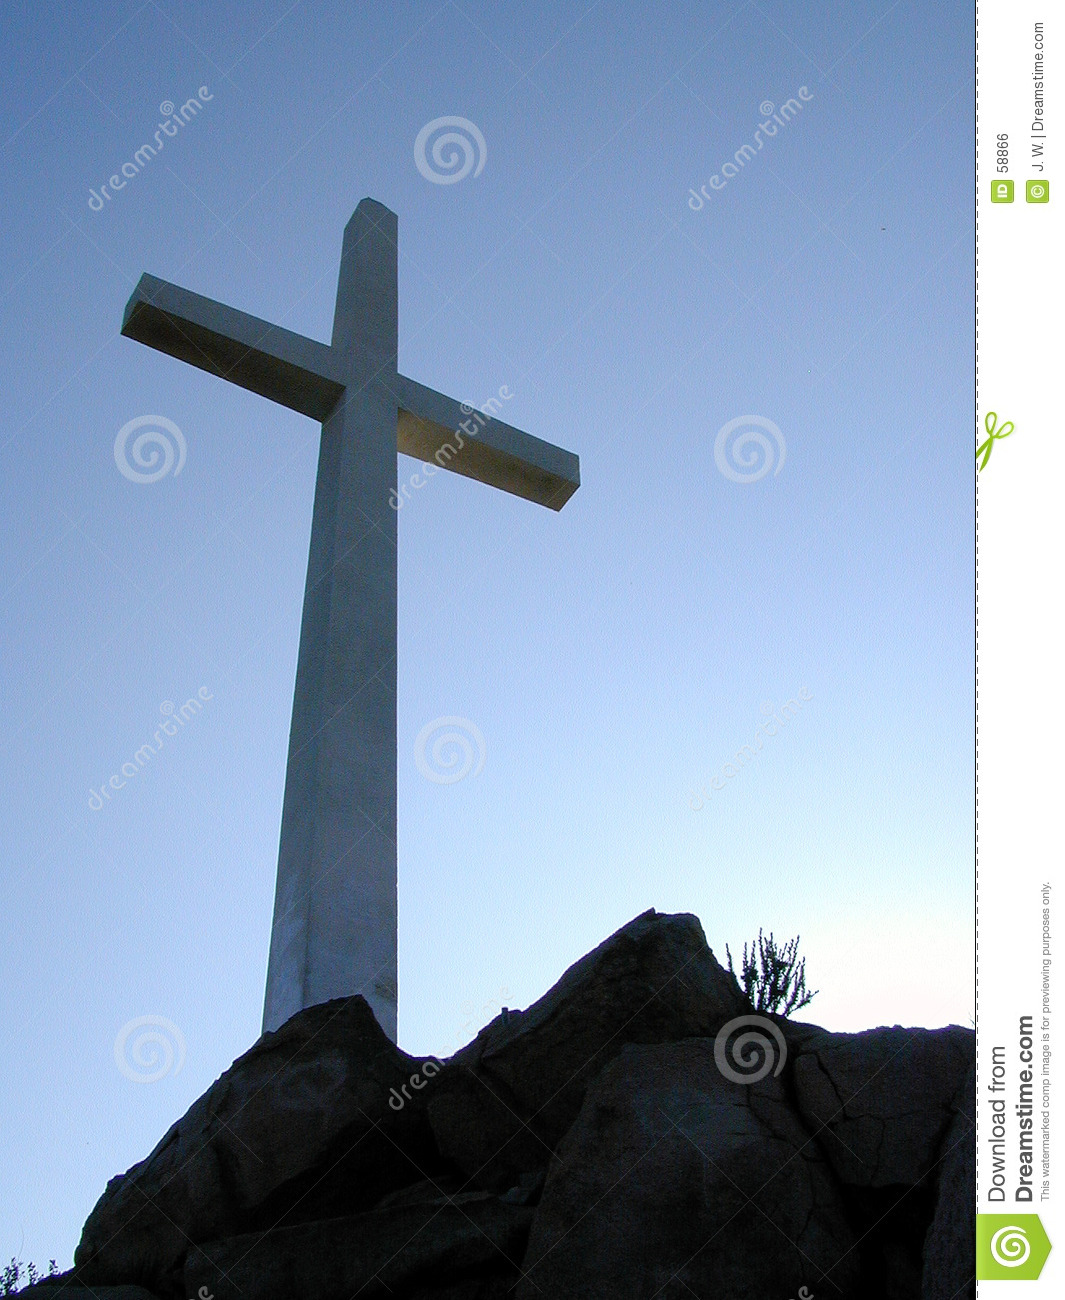 Cross on the Hilltop